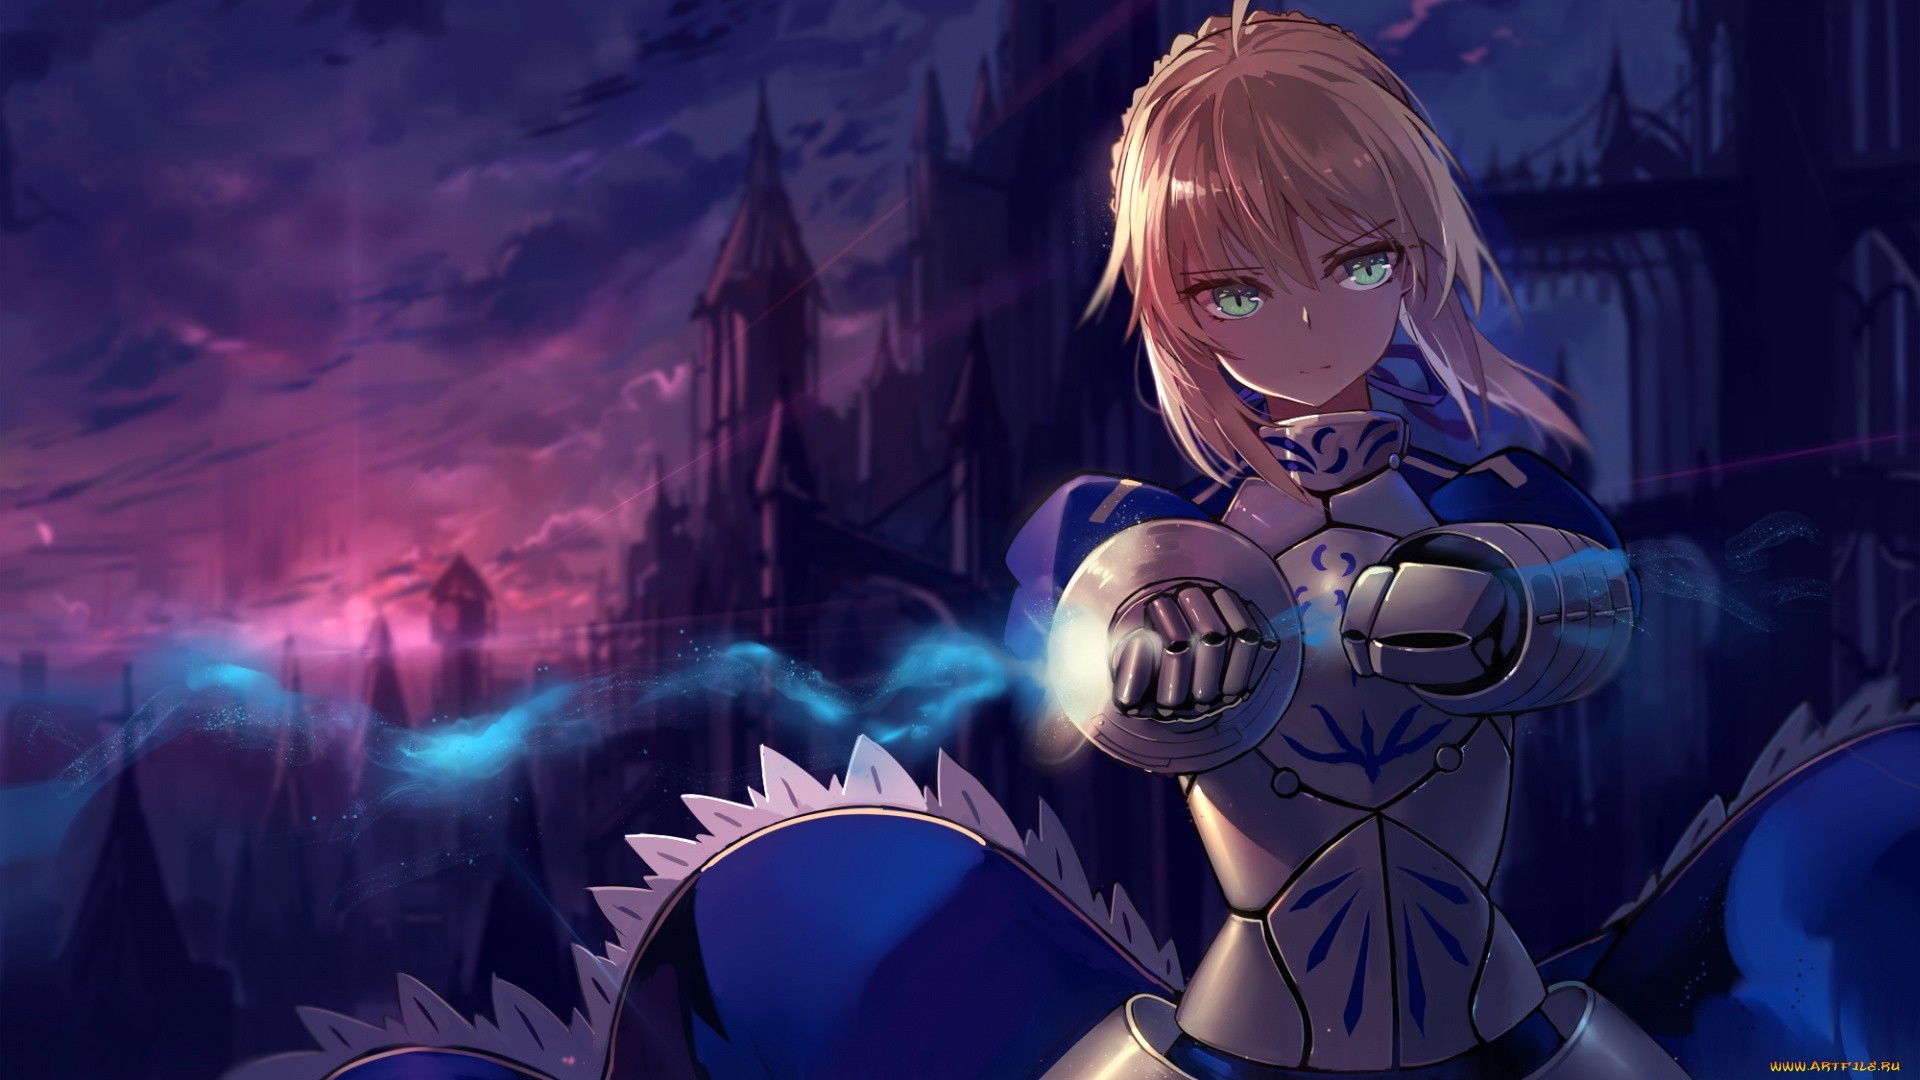 Fate Stay Night Saber Wallpaper Download